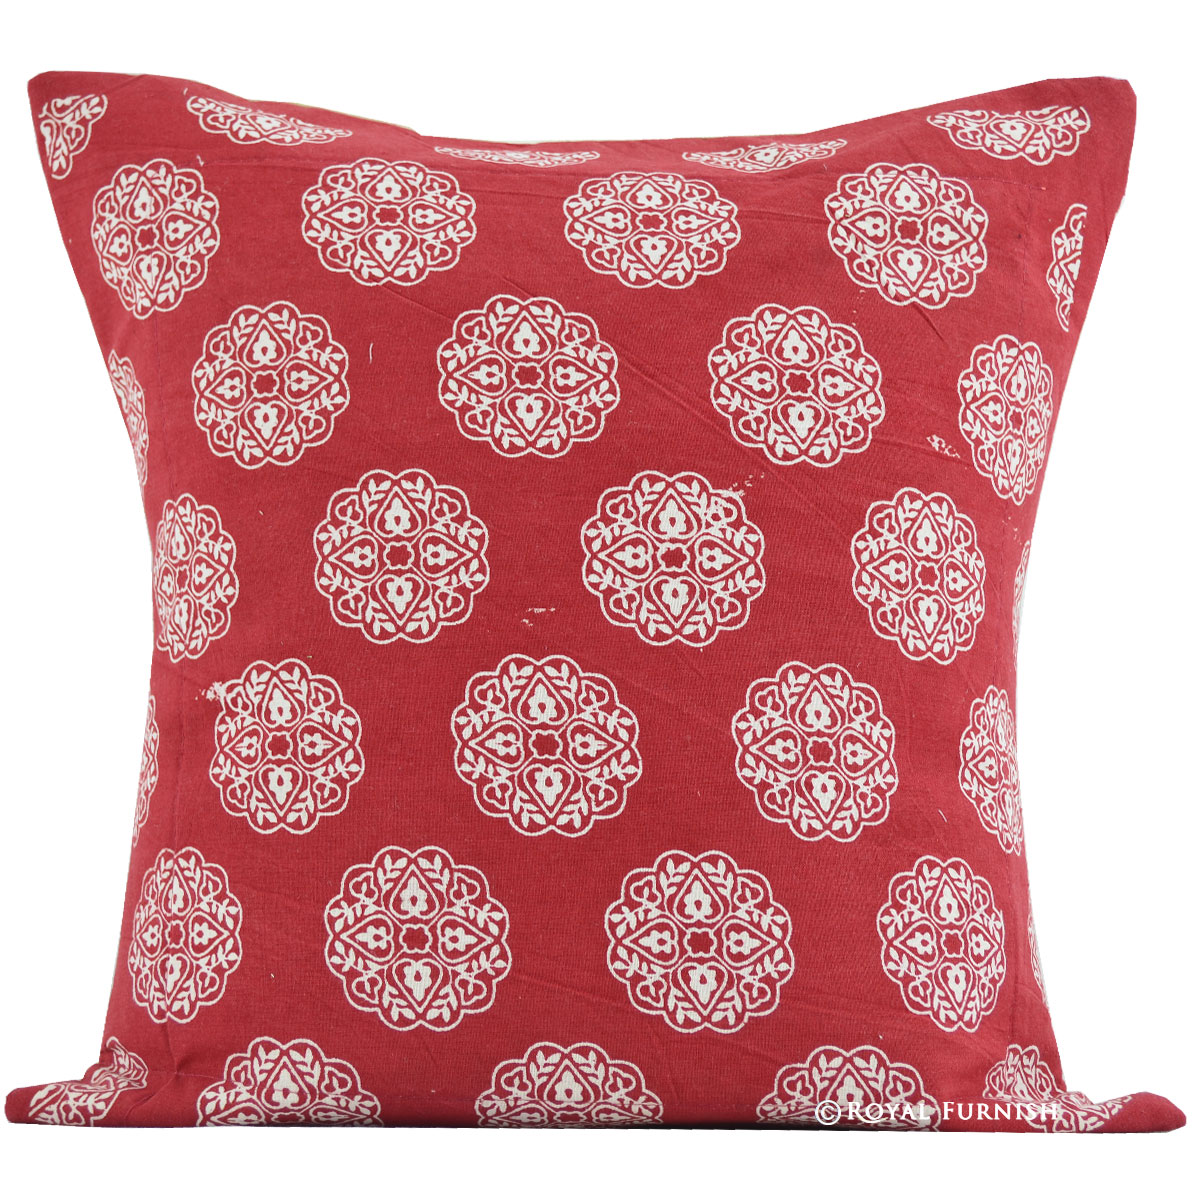 Round Red Decorative Pillows : 16